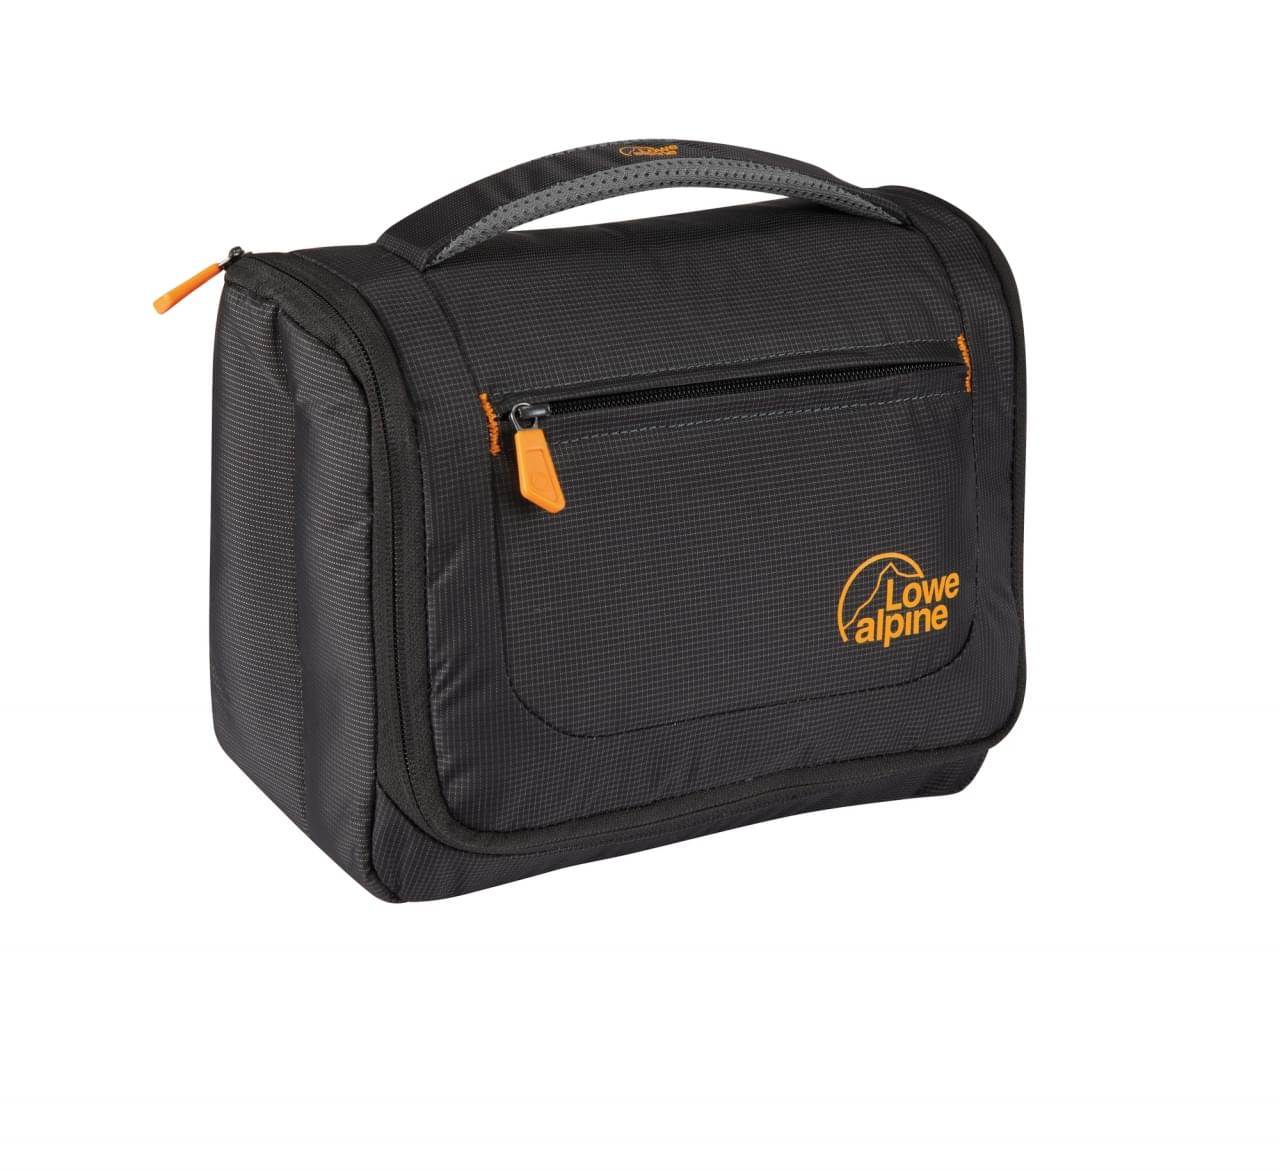 Lowe Alpine Wash Bag Large Toilettas